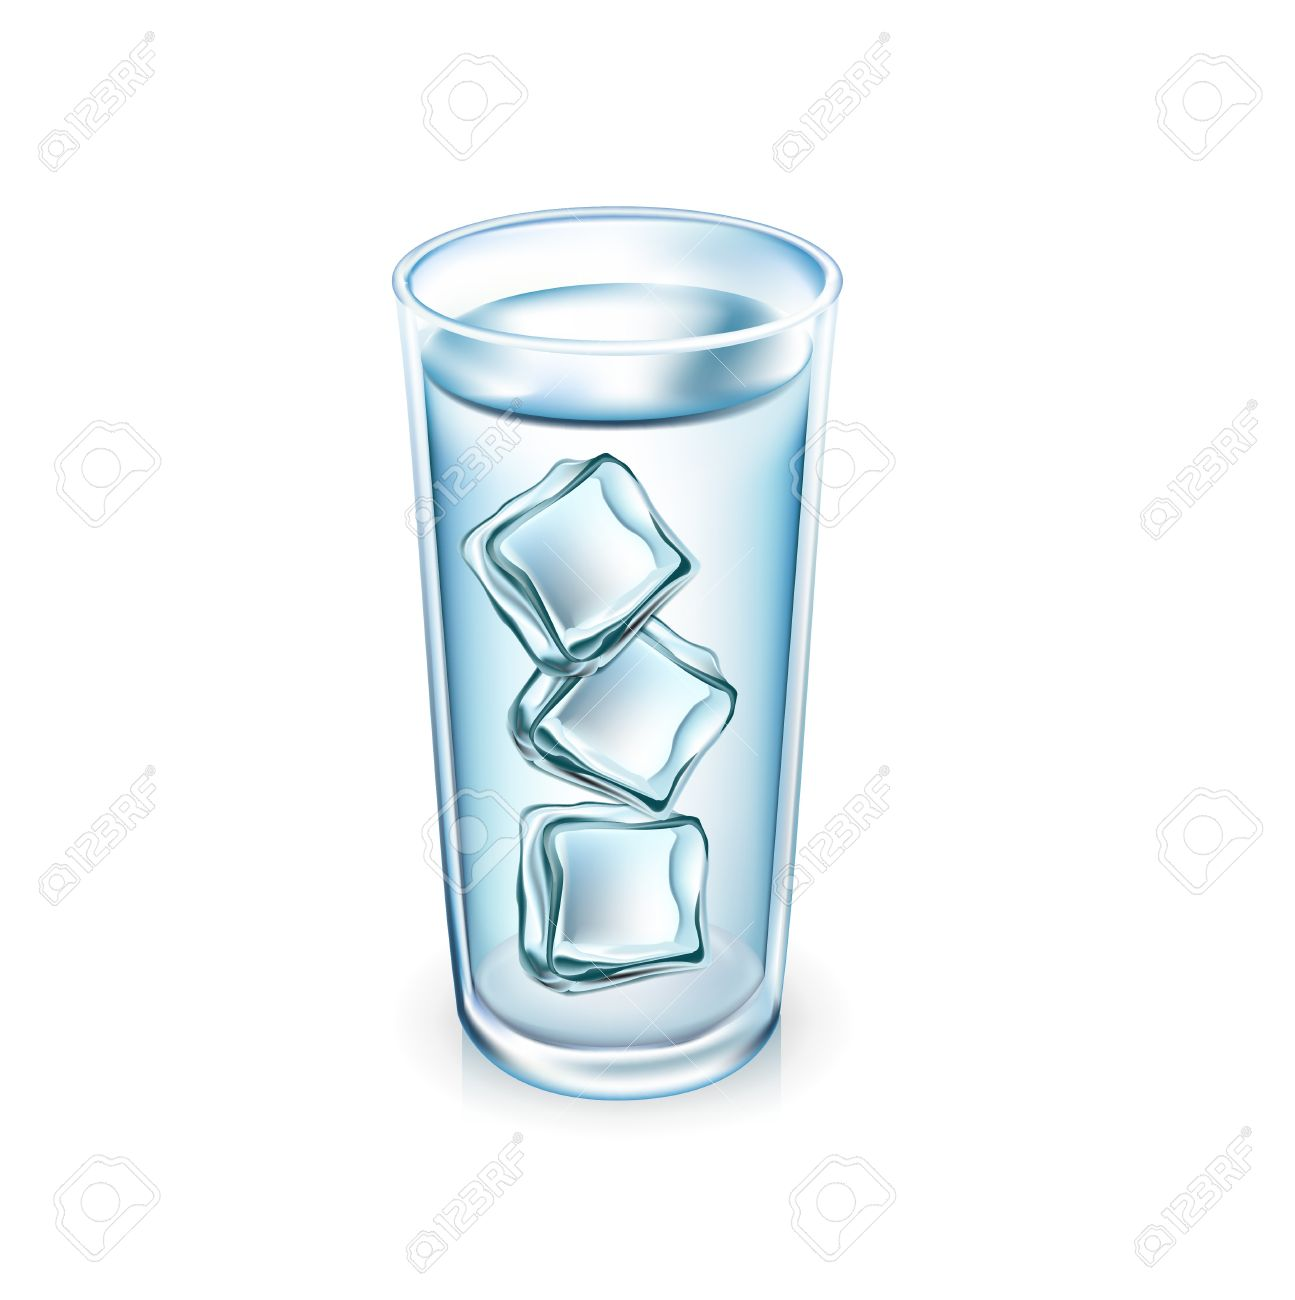 Glass of ice water clipart 1 » Clipart Station.